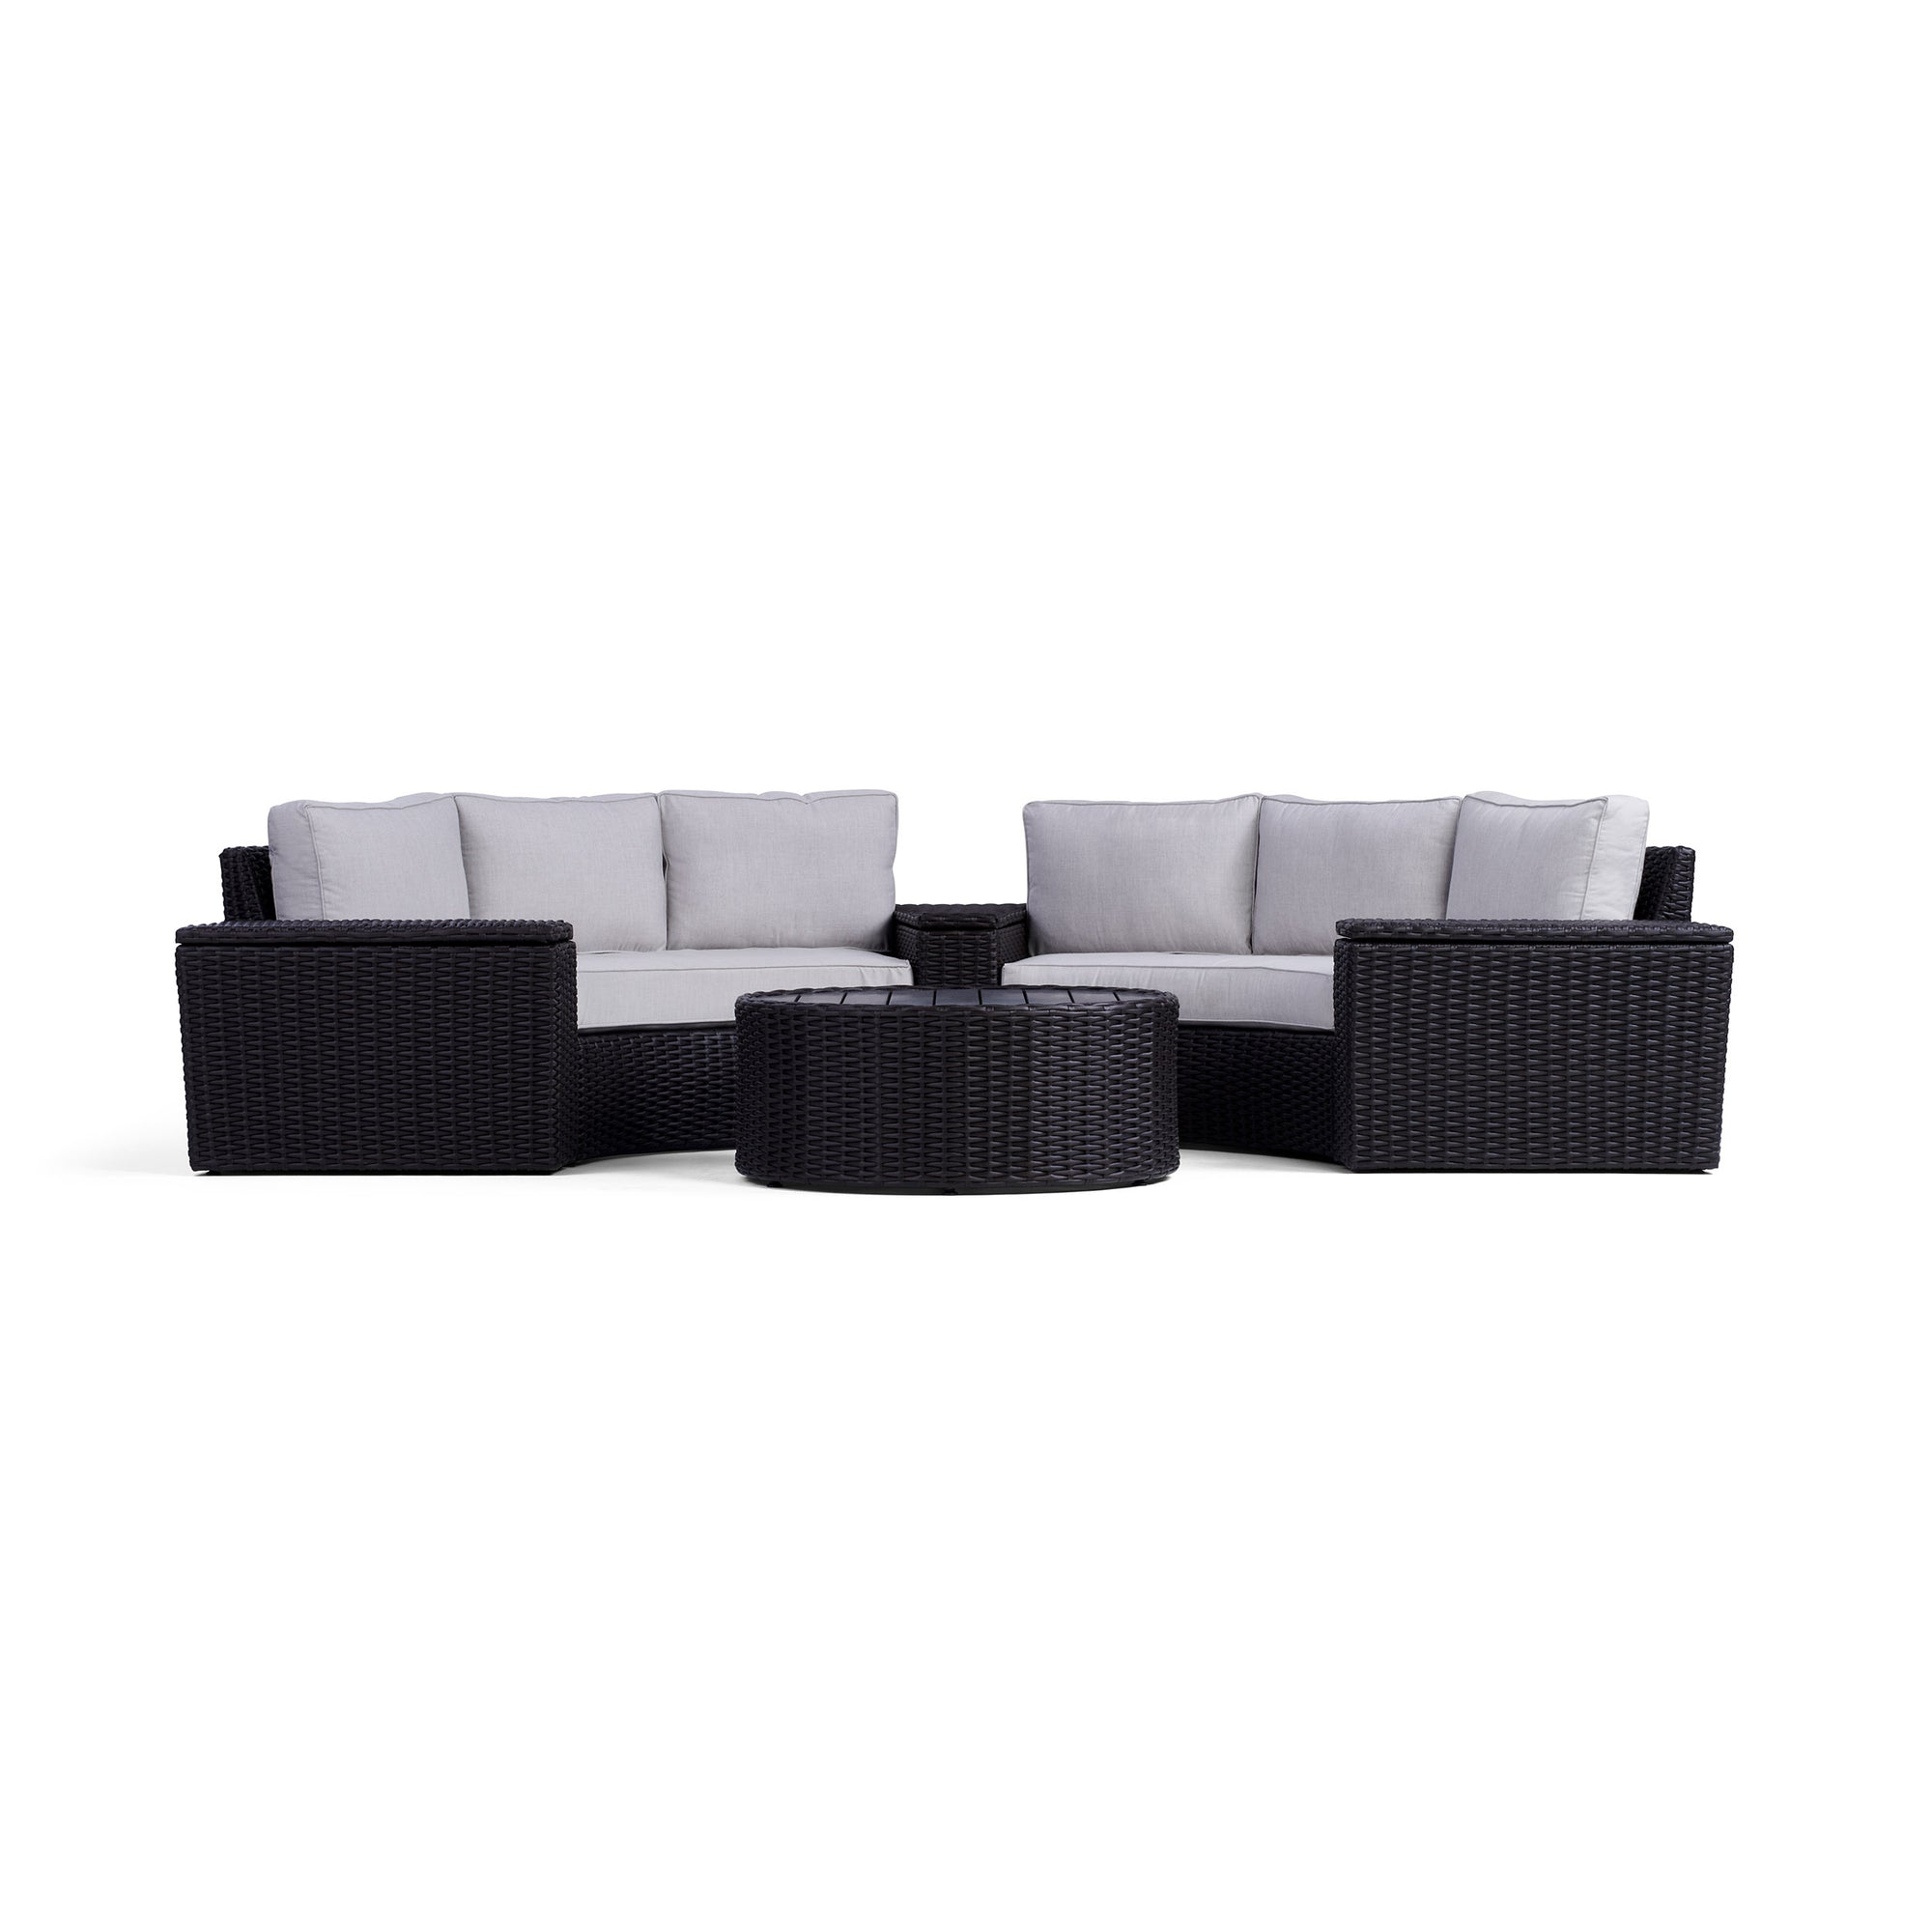 Swell Elliot 6 Piece Round Outdoor Sectional Set Yardbird Cjindustries Chair Design For Home Cjindustriesco